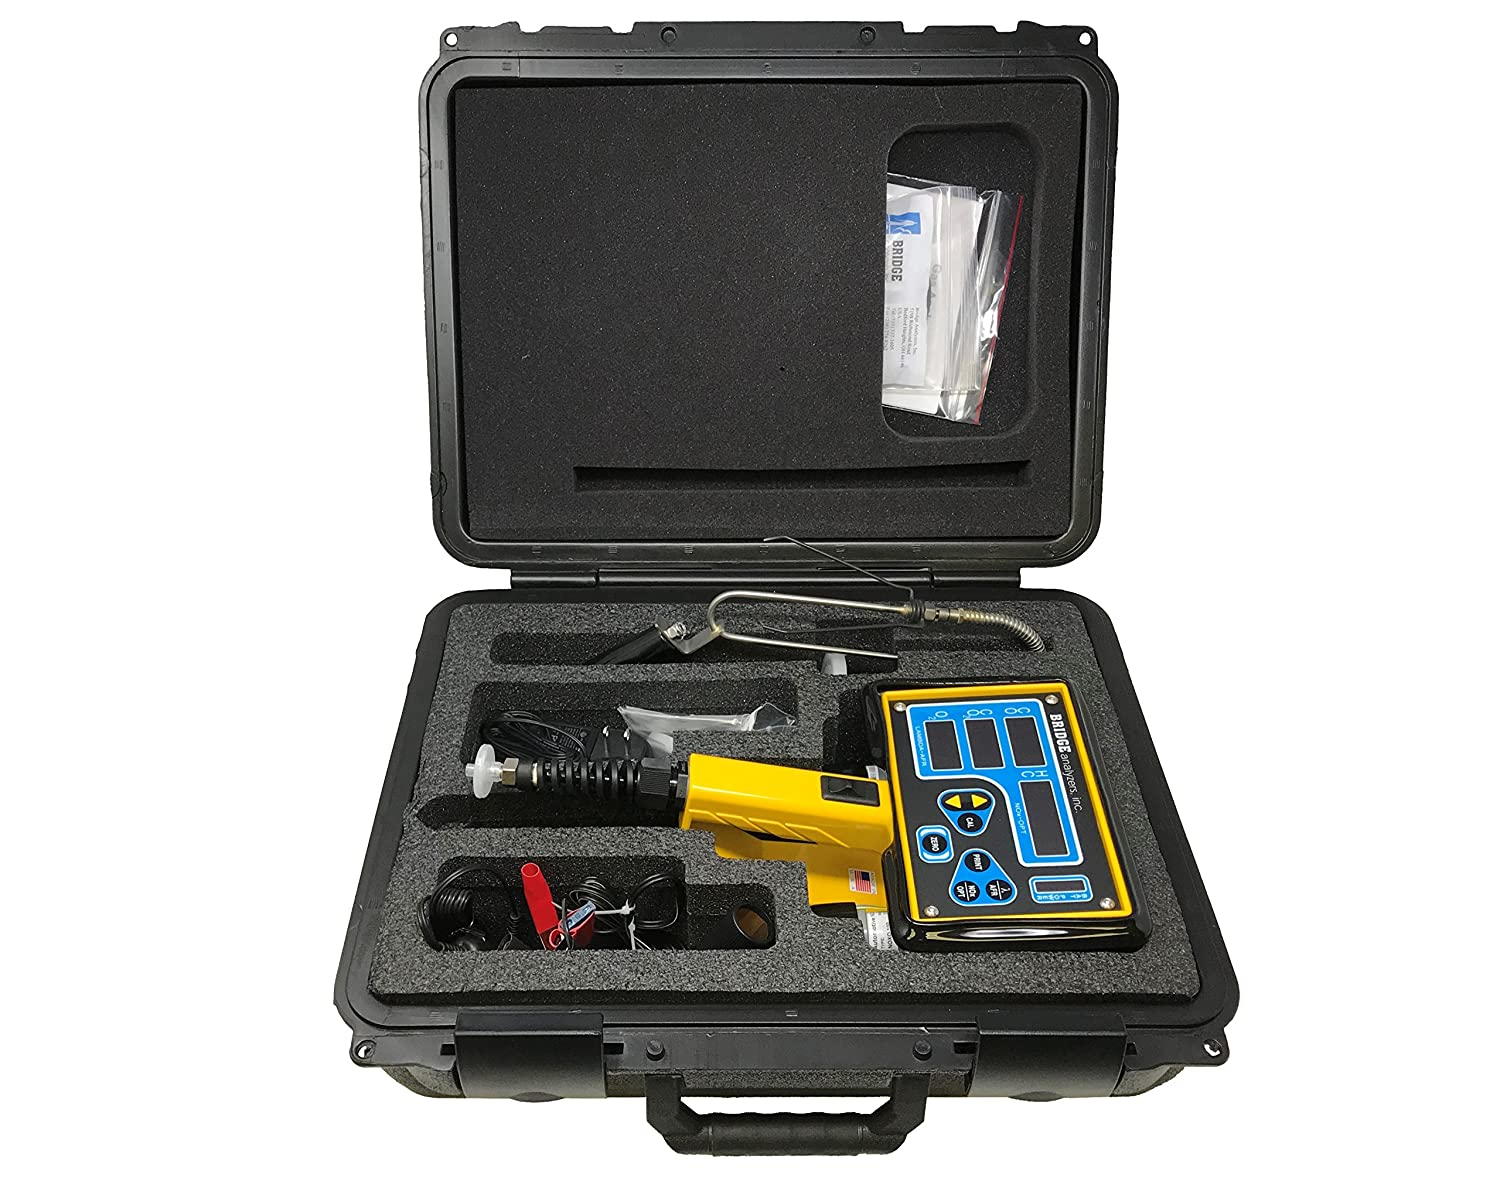 5 Gas (CO, HC, CO2, O2, NOx) Exhaust Gas Analyzer: Amazon.com: Industrial & Scientific